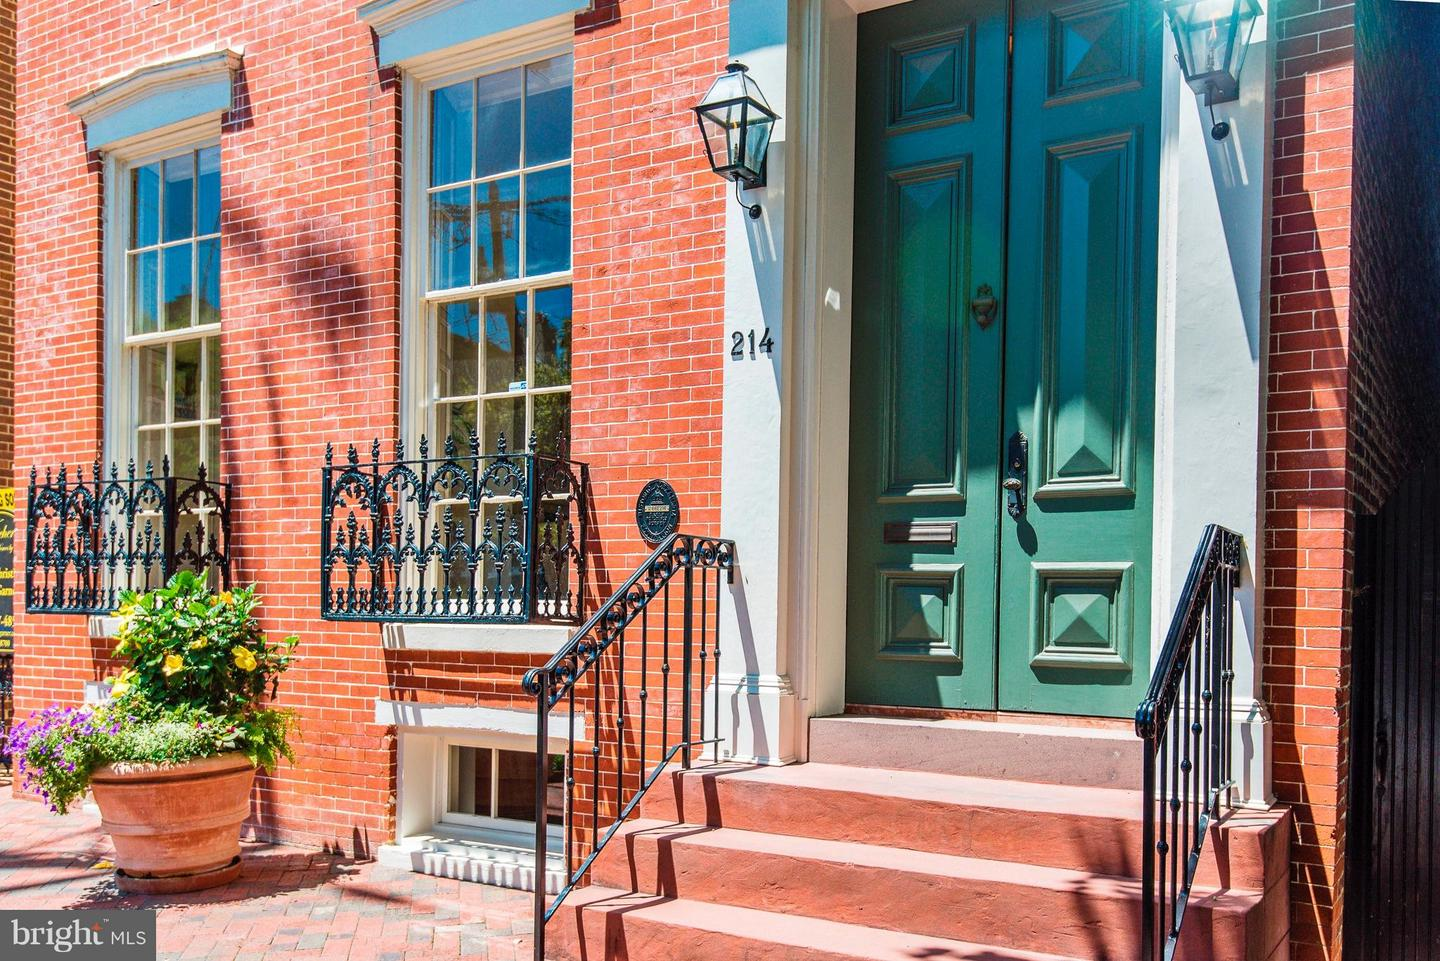 Single Family Home for Sale at 214 Royal St N 214 Royal St N Alexandria, Virginia 22314 United States